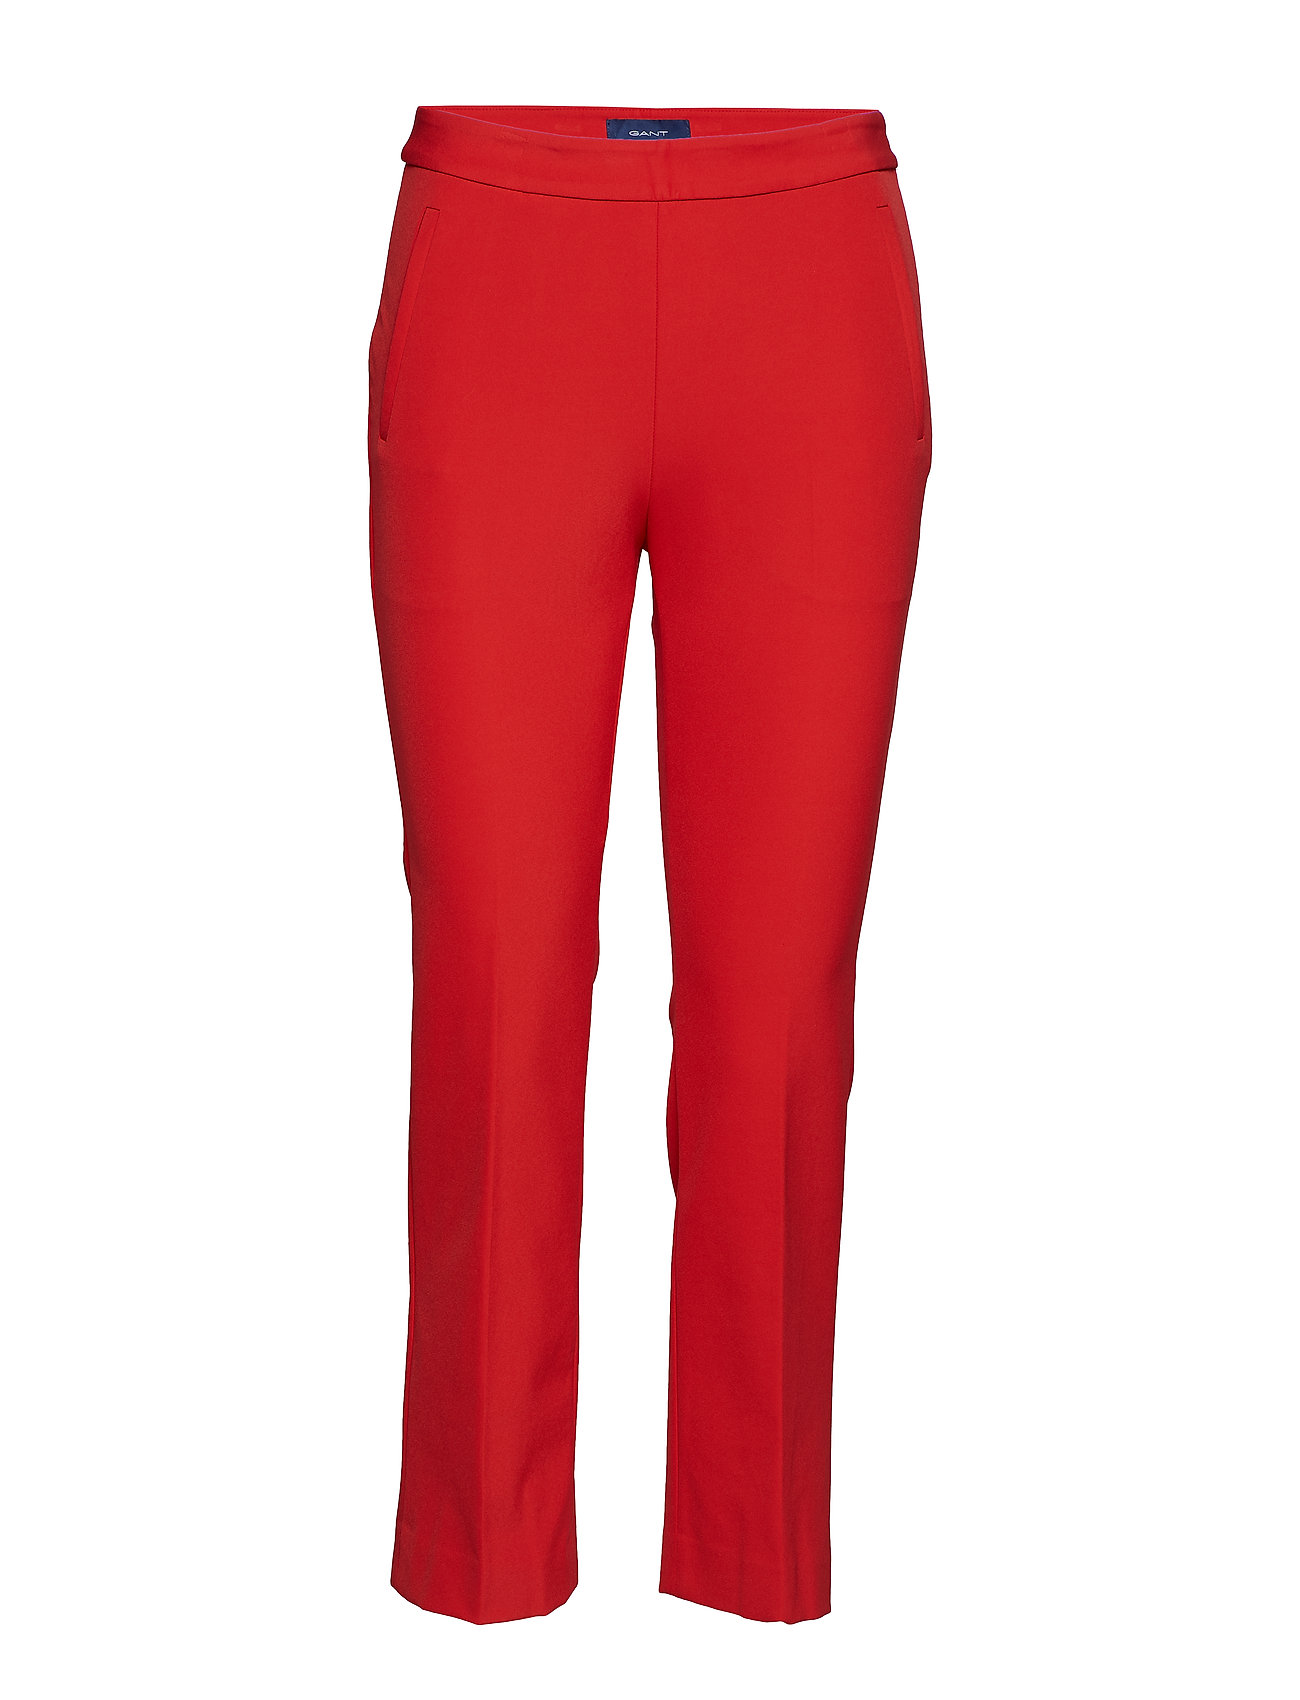 Image of O1. Straight Cropped Pant Smalle Bukser Skinny Pants Rød GANT (3105944061)